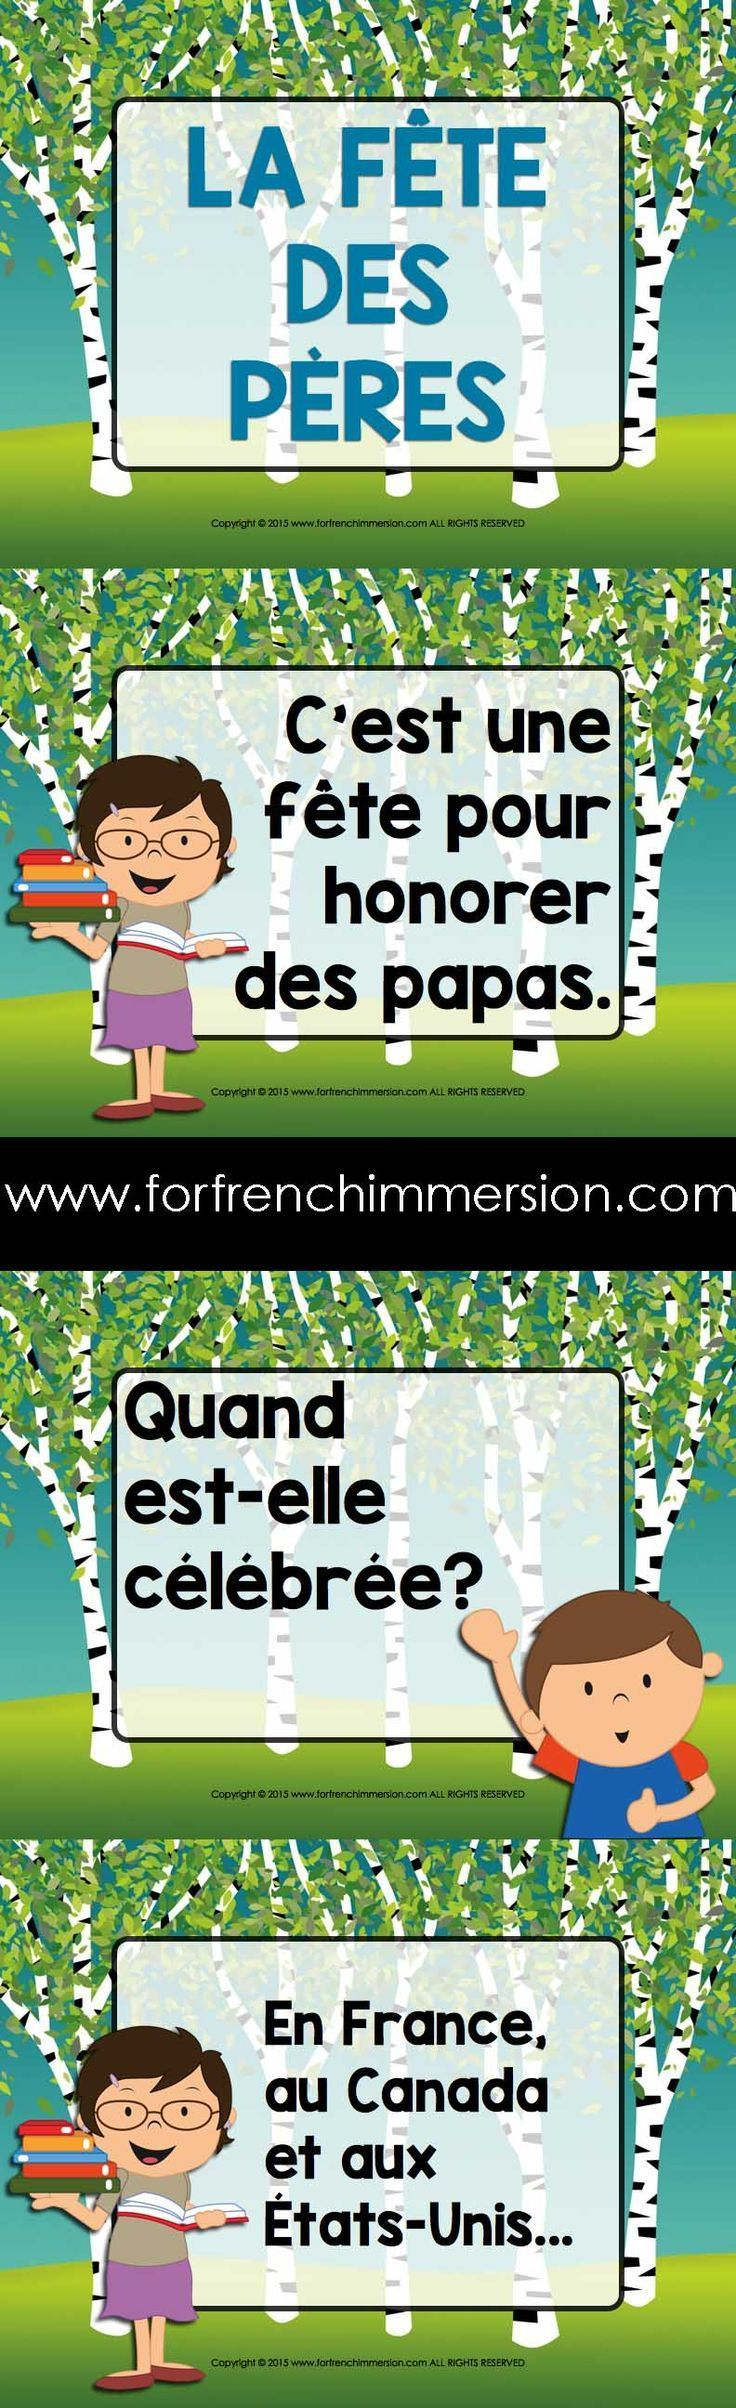 Fête des pères - Slideshare about Father's Day in French.